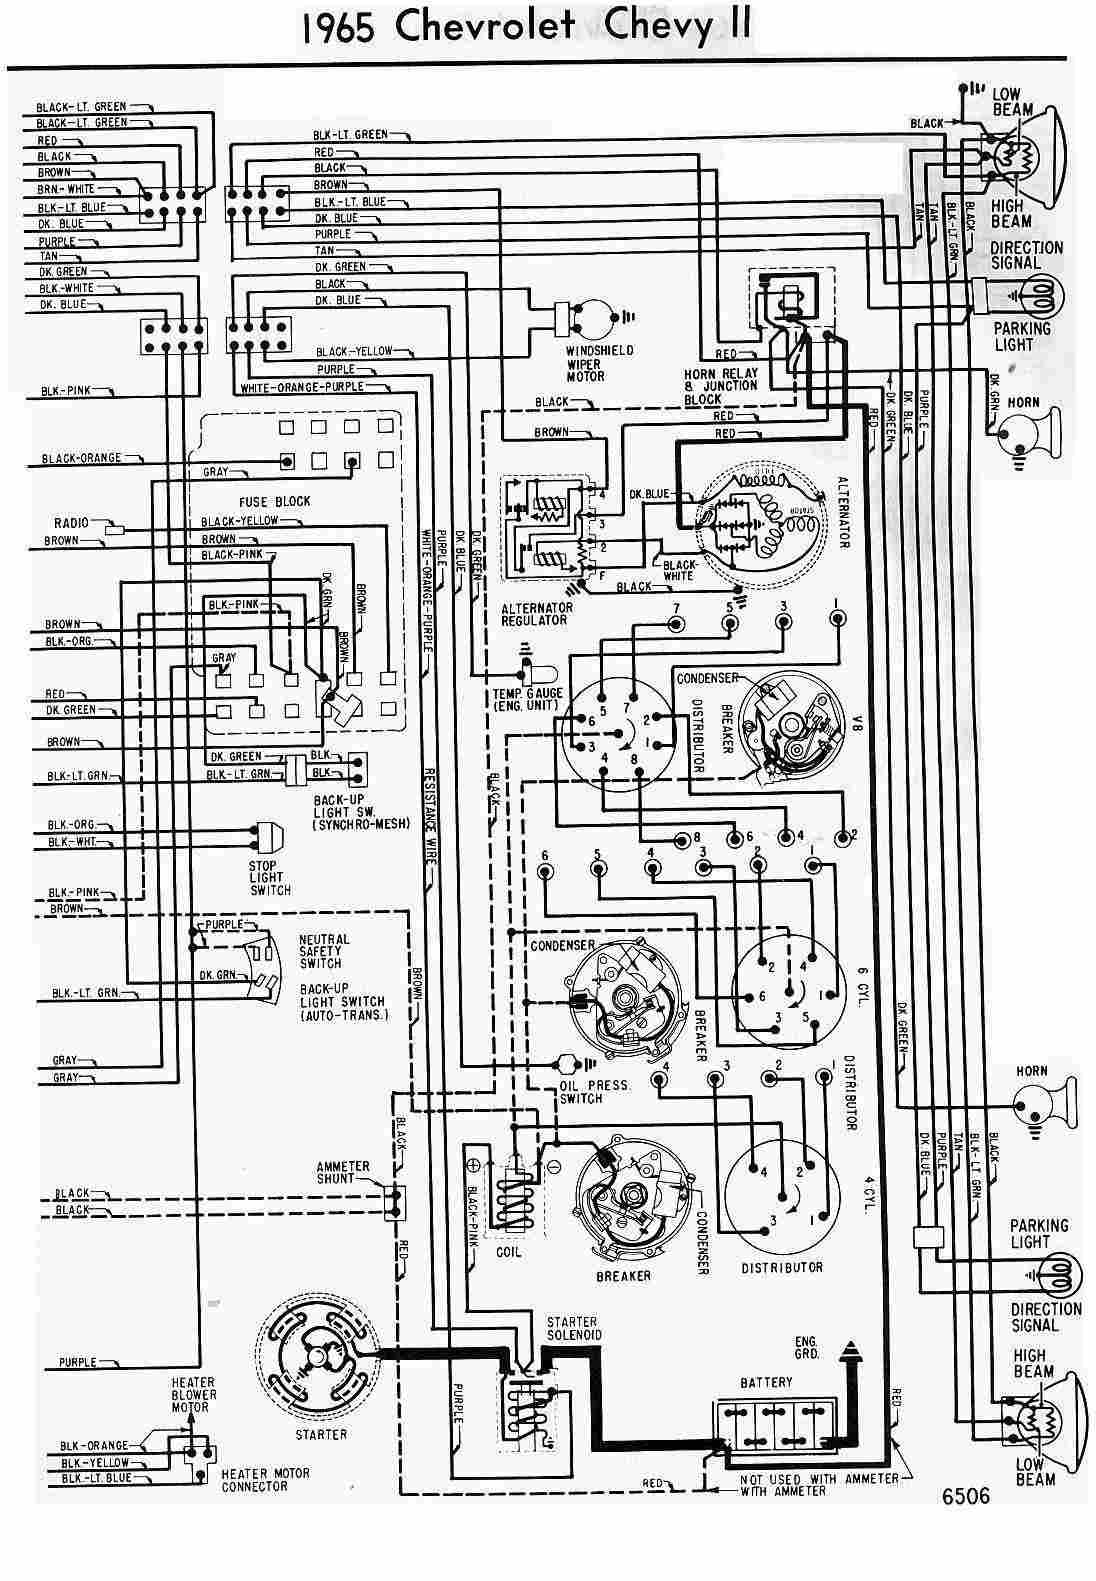 medium resolution of 65 chevy c10 wiring diagram 1965 truck